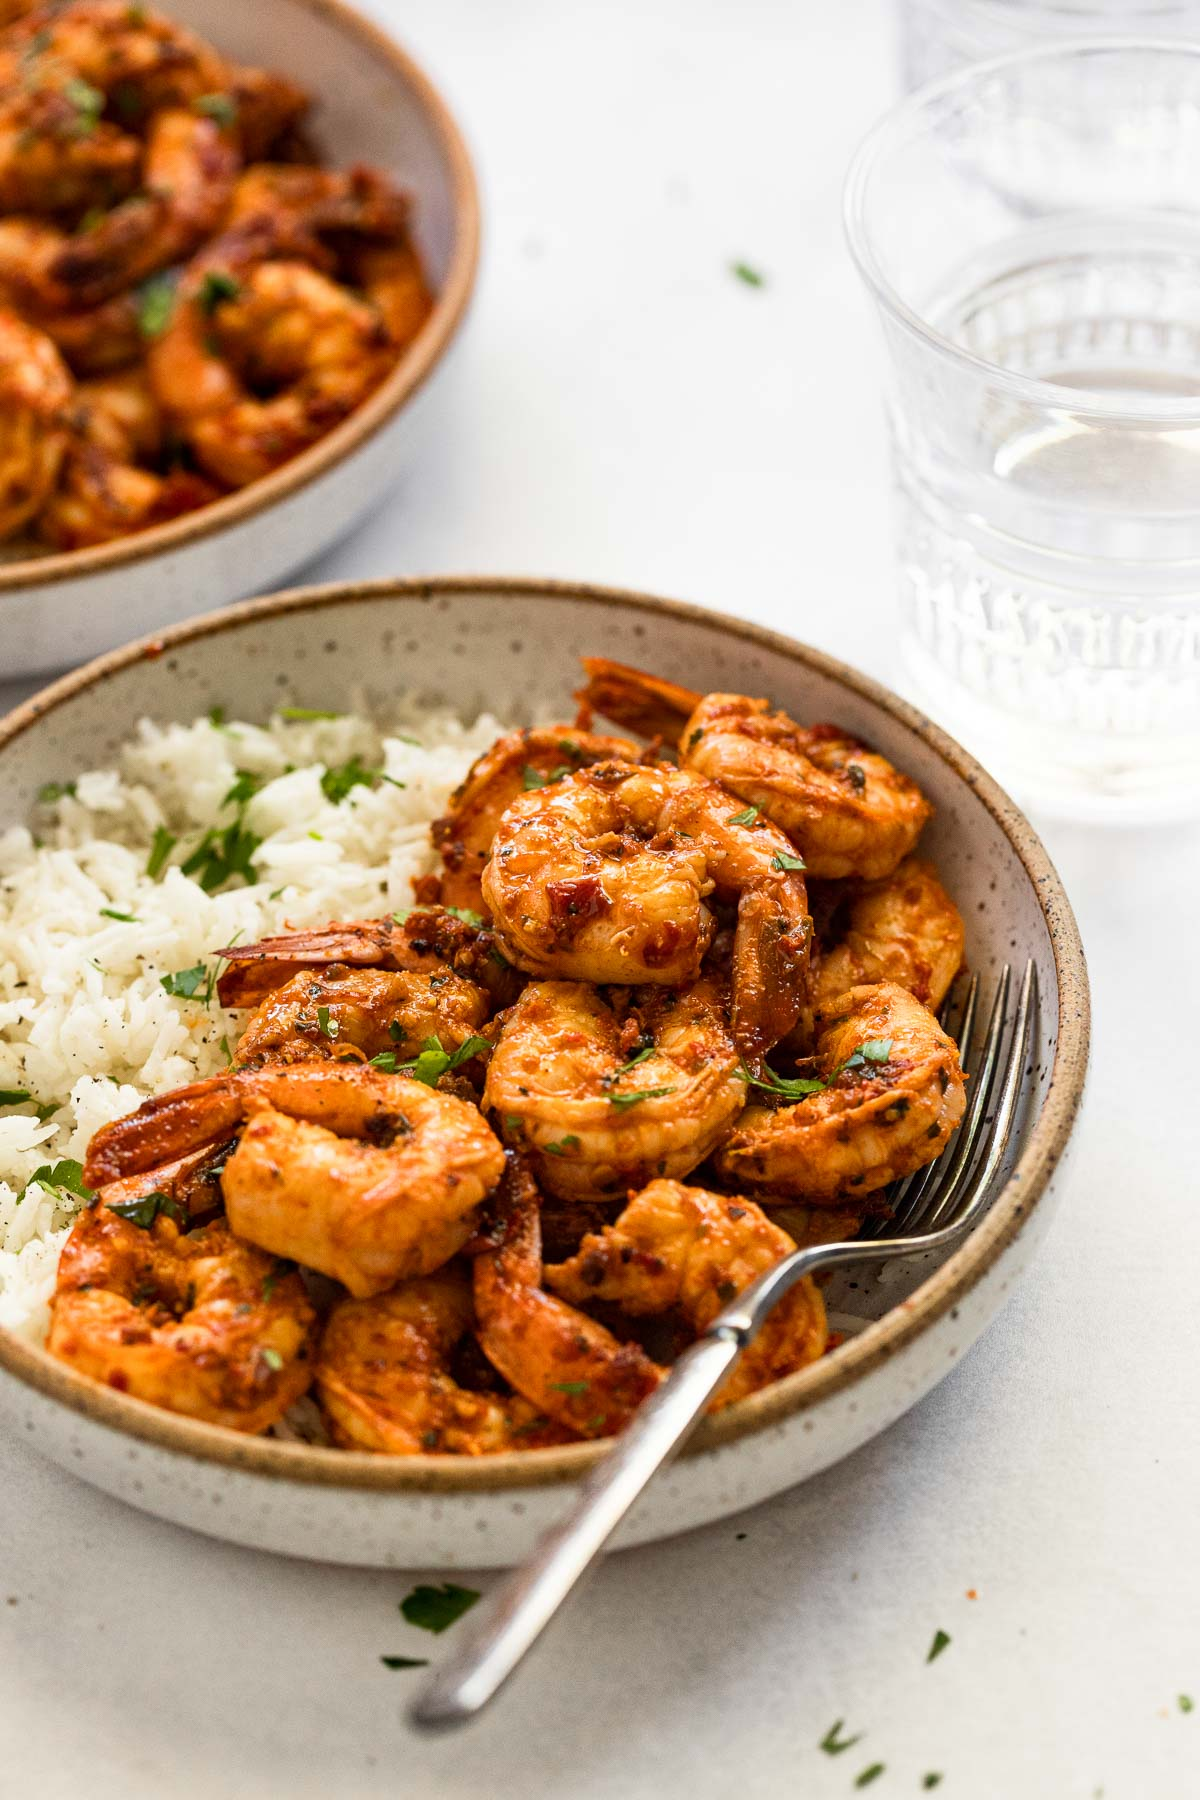 Bowl with rice and shrimp.